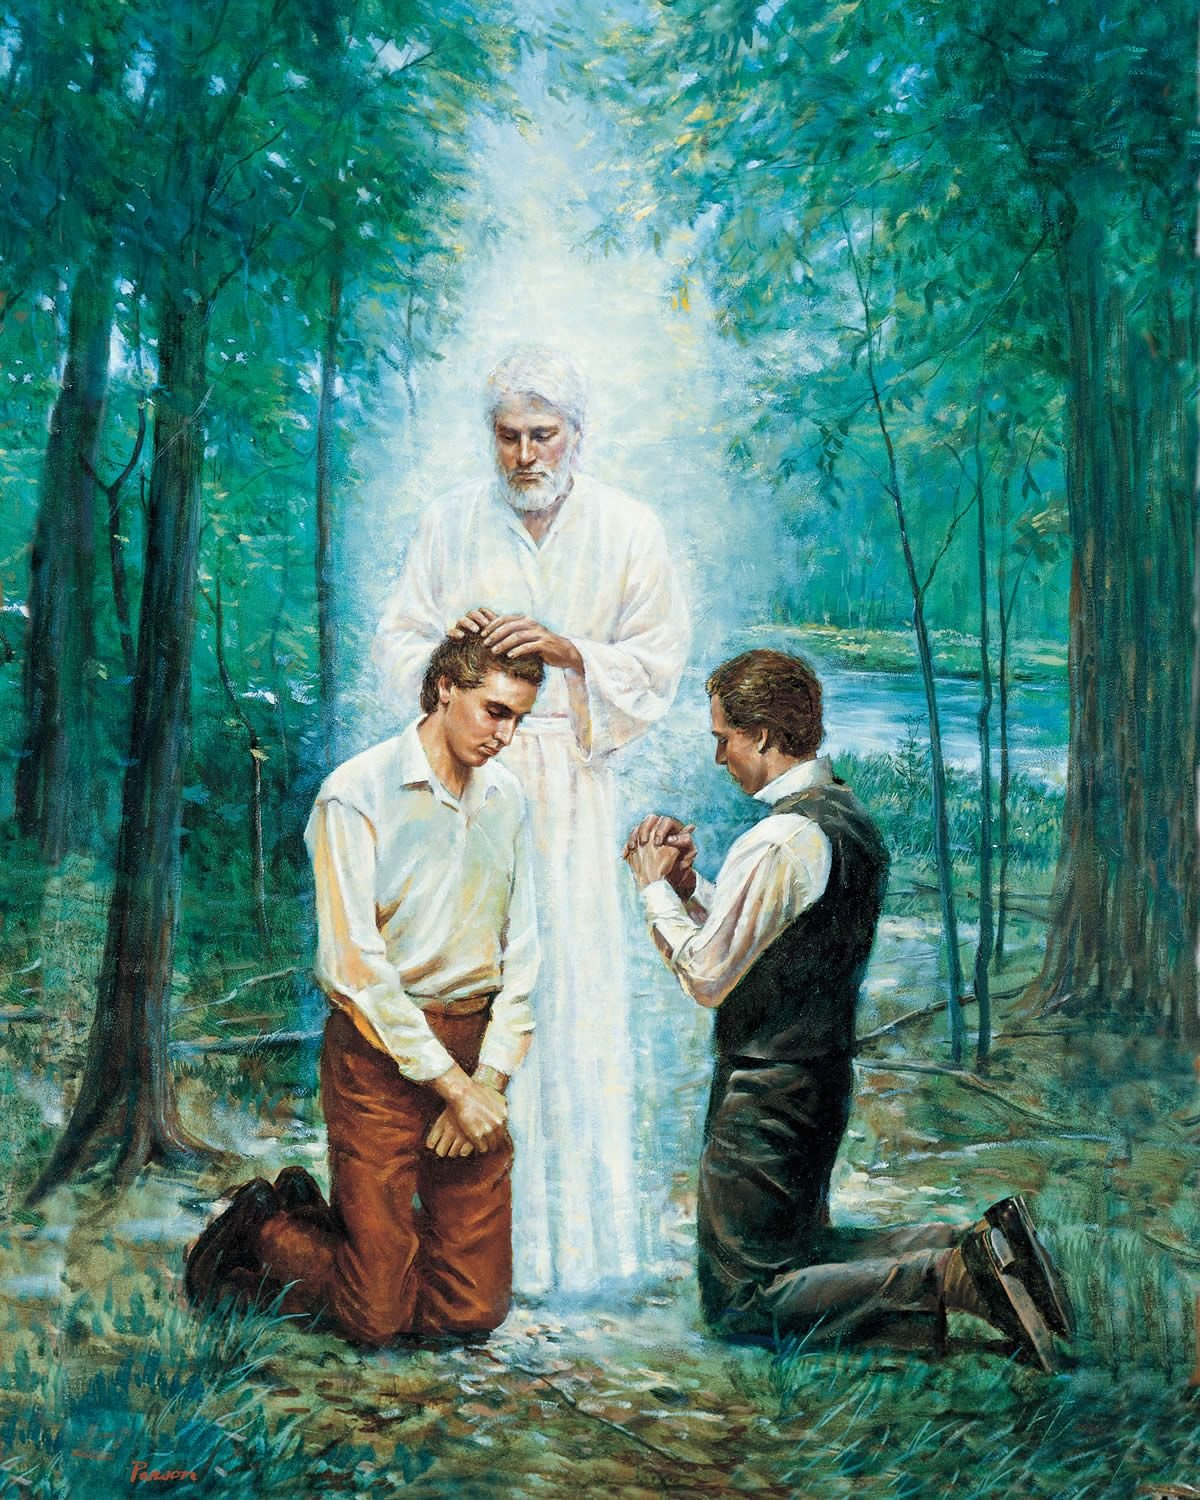 Joseph Smith and Oliver Cowdery receive the Aaronic Priesthood by the laying on of hands from John the Baptist